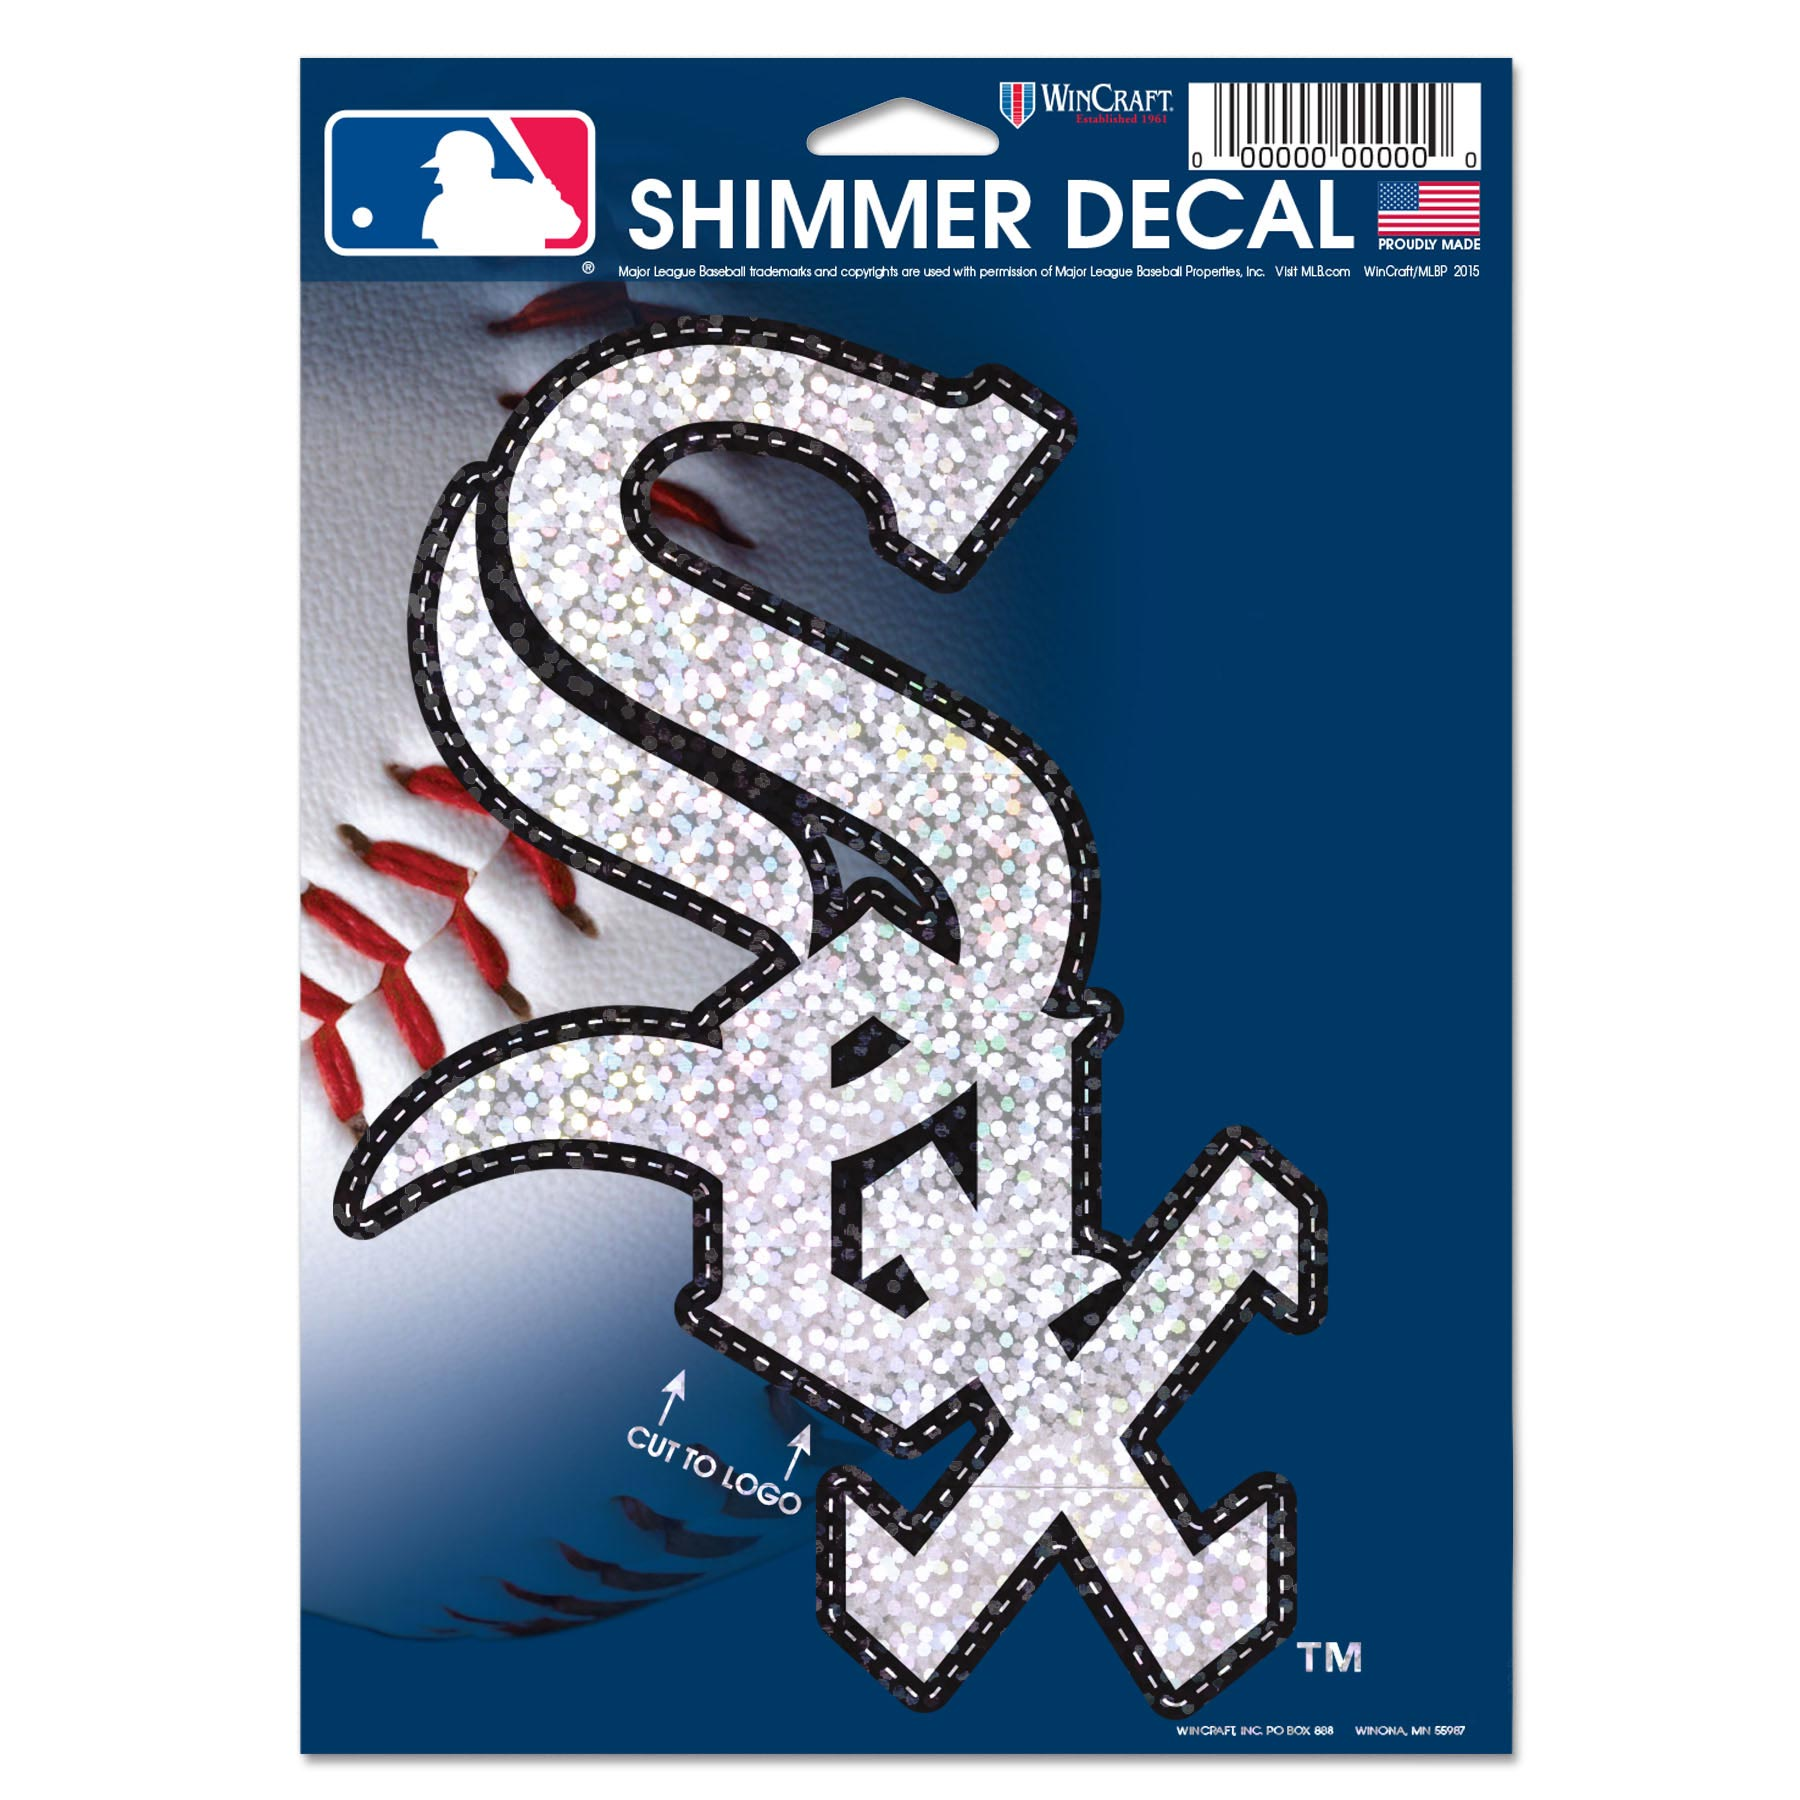 "Chicago White Sox WinCraft 5"" x 7"" Shimmer Decal - No Size"